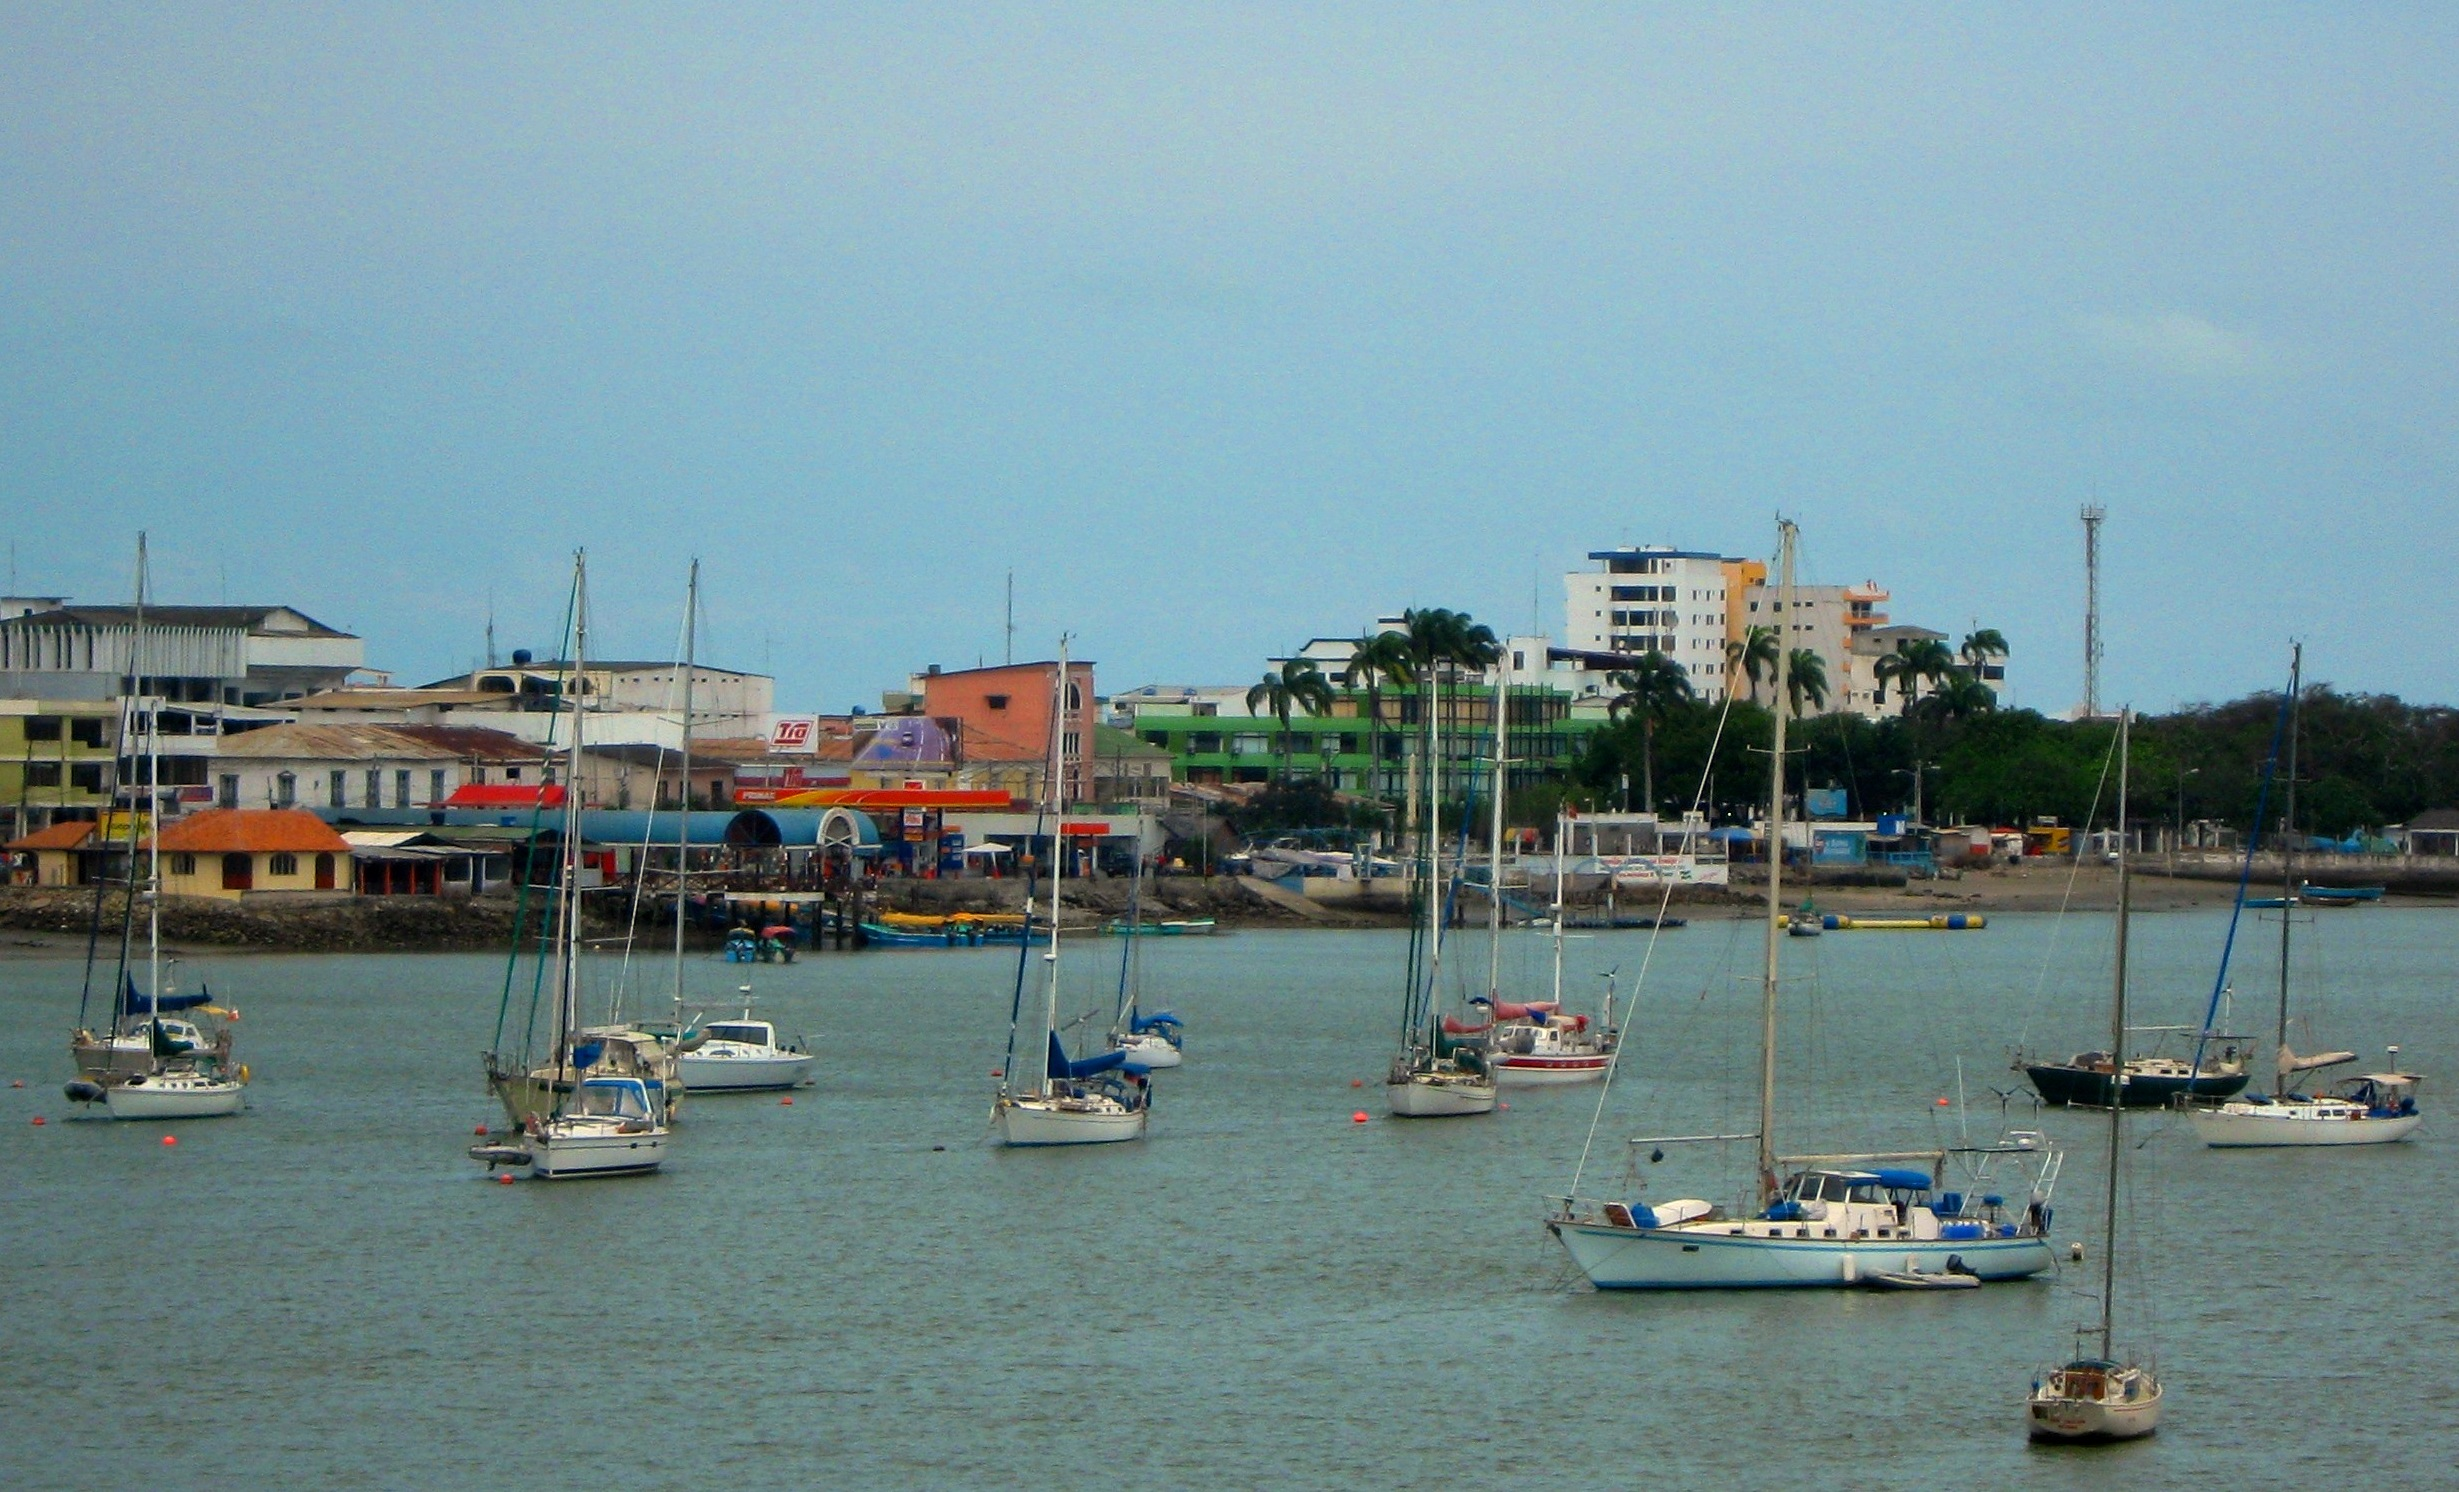 bahia de caraquez women Find the best things to do and see in manabí, vva travel guides - by viva travel guides award winning guidebooks, ebooks and iphone apps.